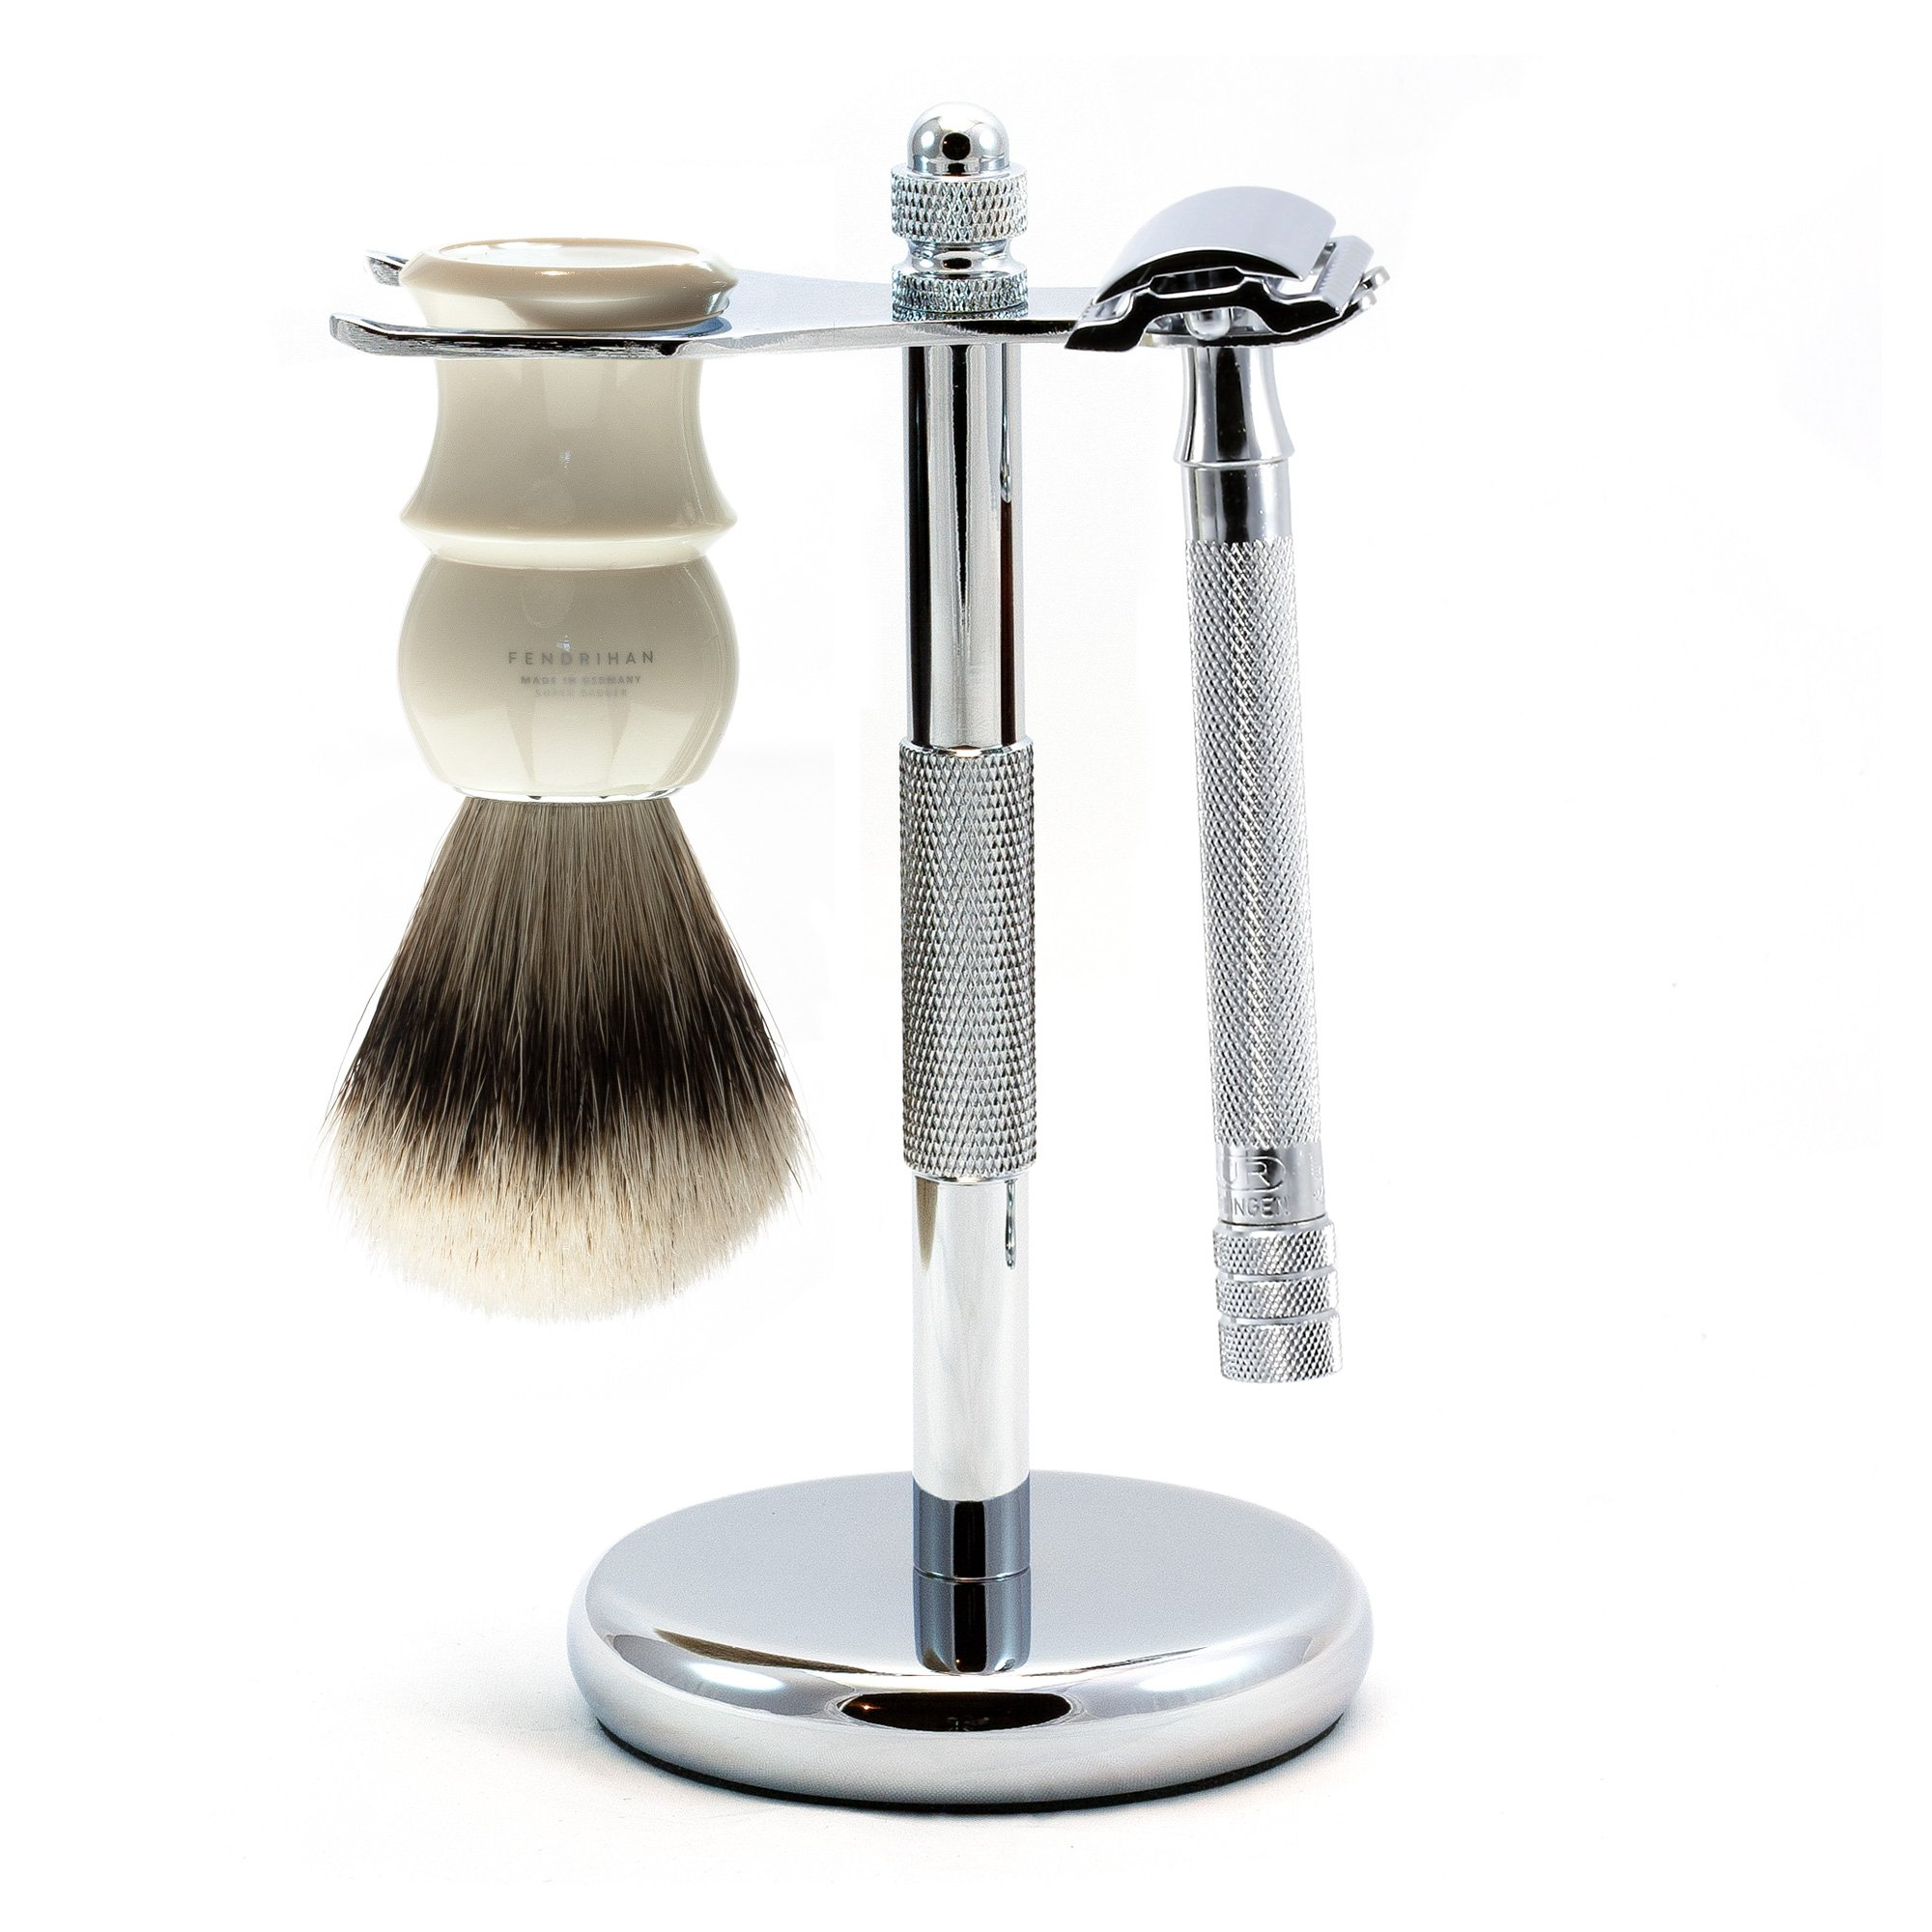 3-piece Shaving Set with Merkur 23c Long-handle Razor and Super Badger Brush, Made in Germany (Ivory)